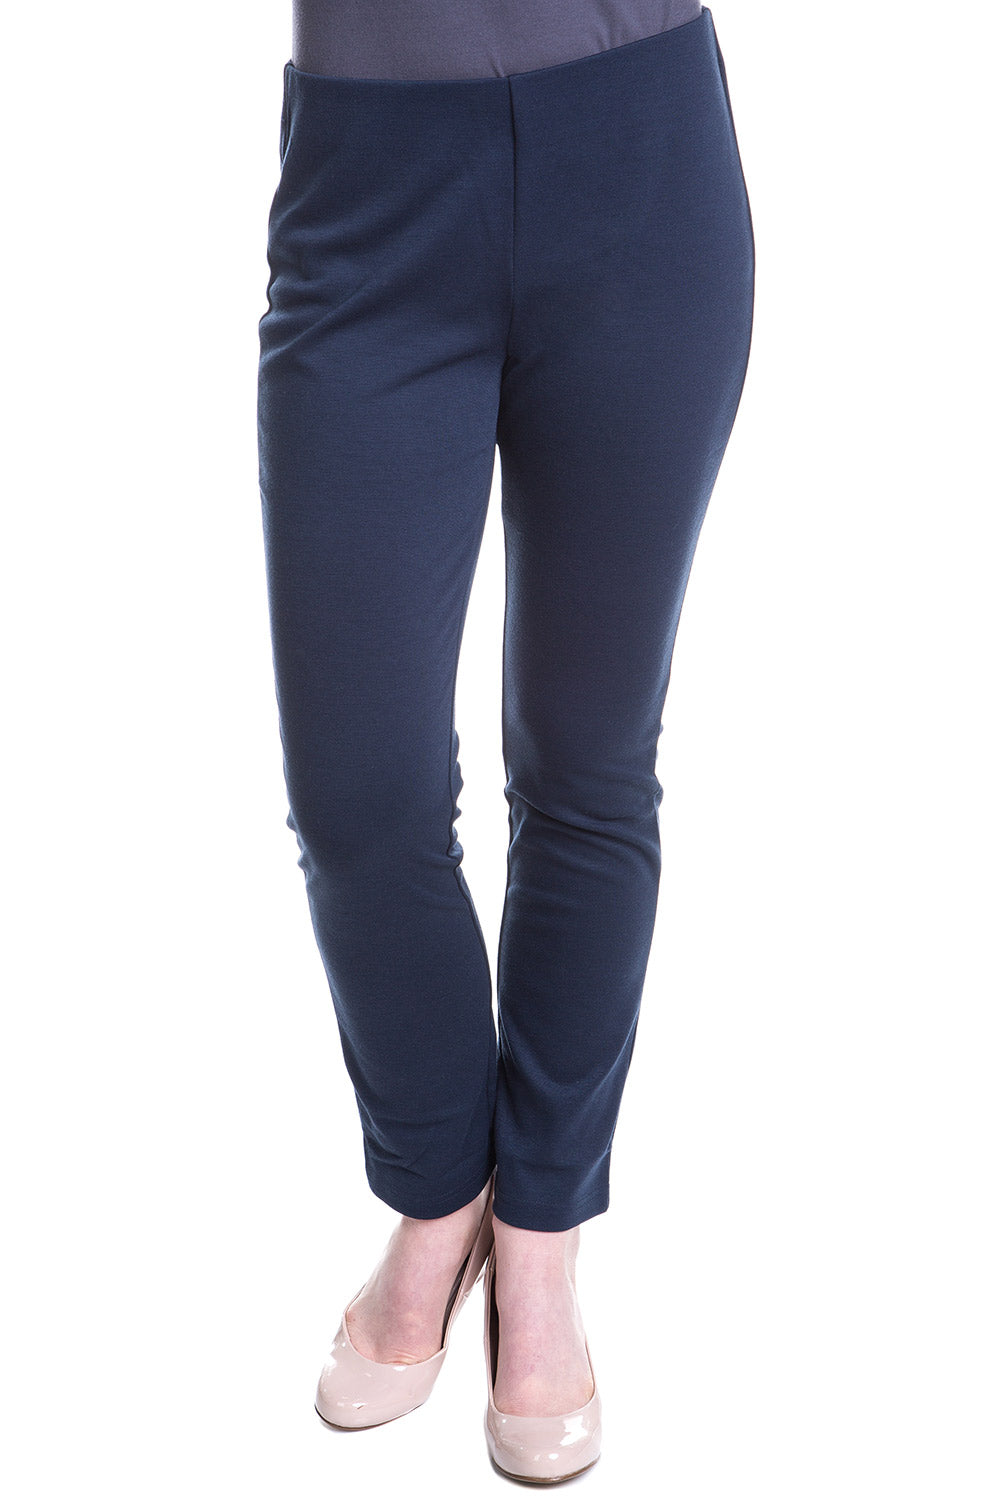 Type 2 In The Mix Pants In Navy